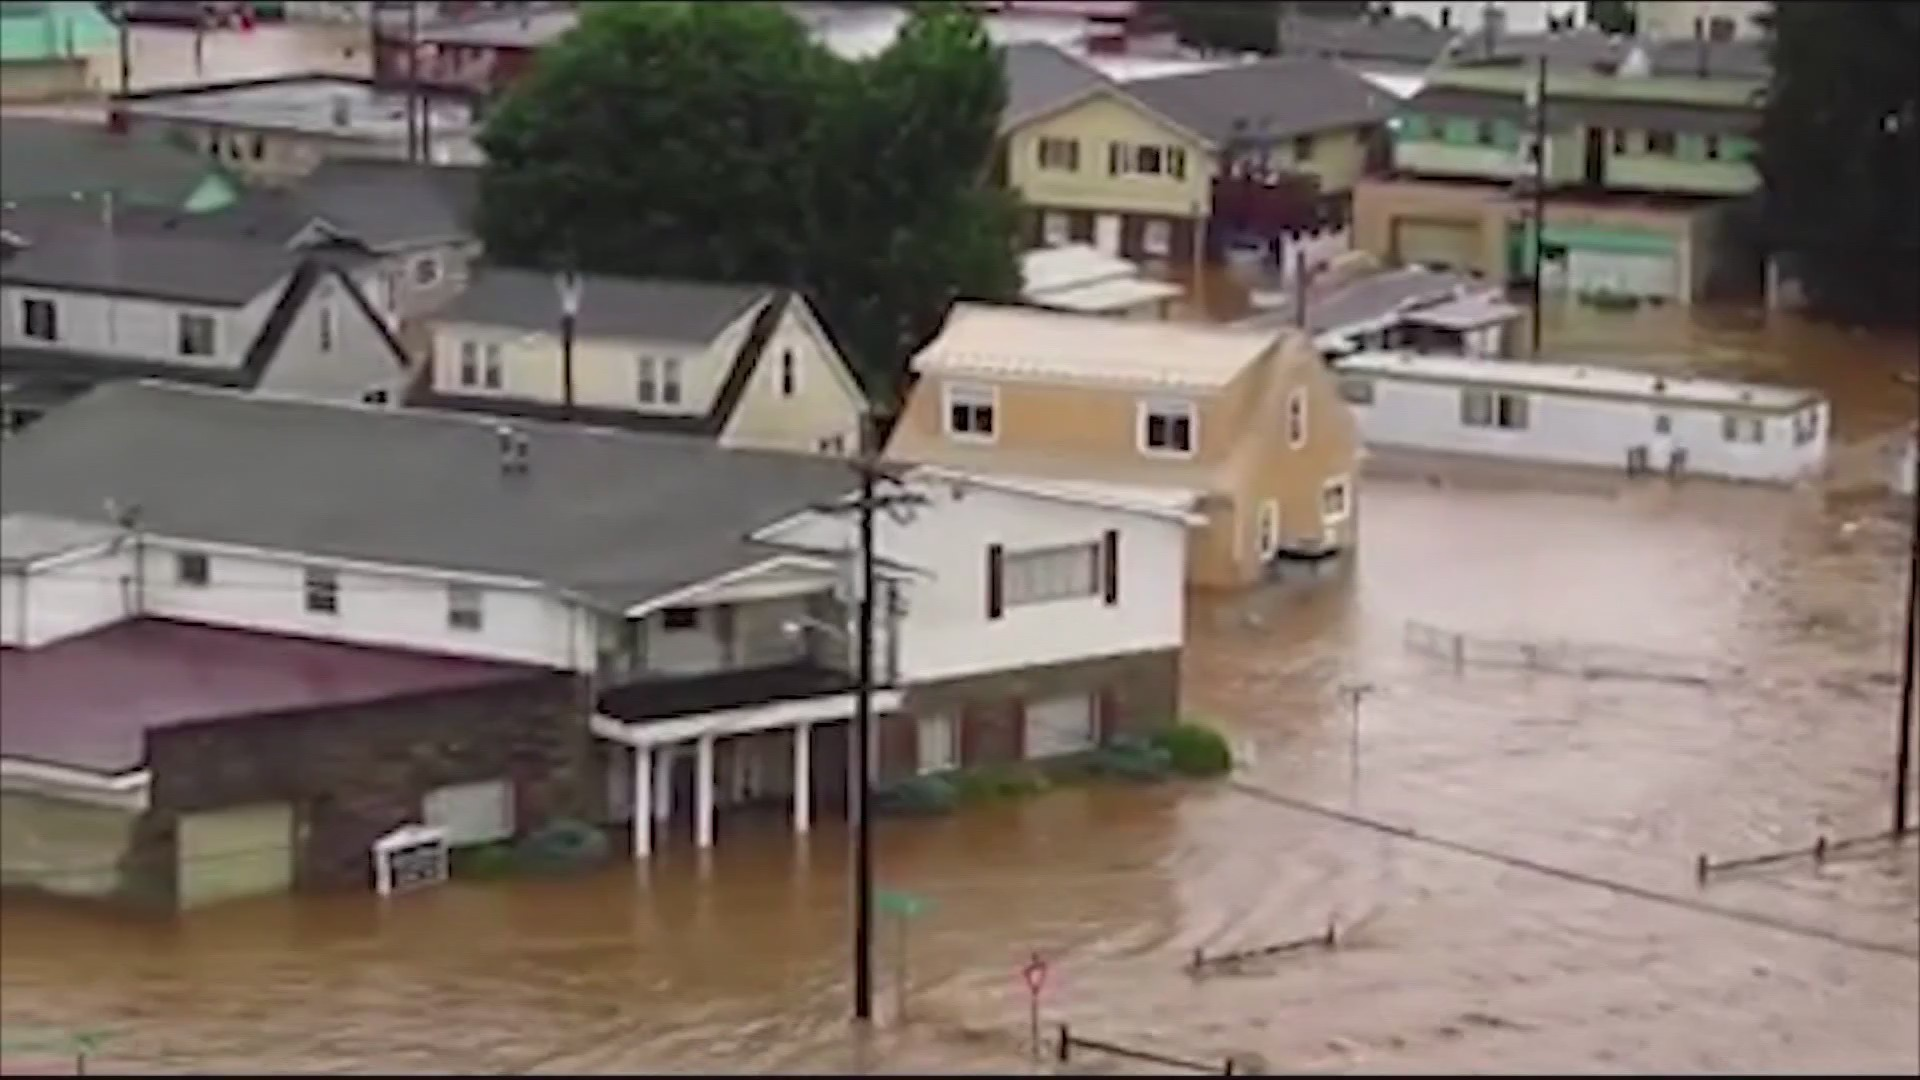 West Virginia Committee on Flooding Returns